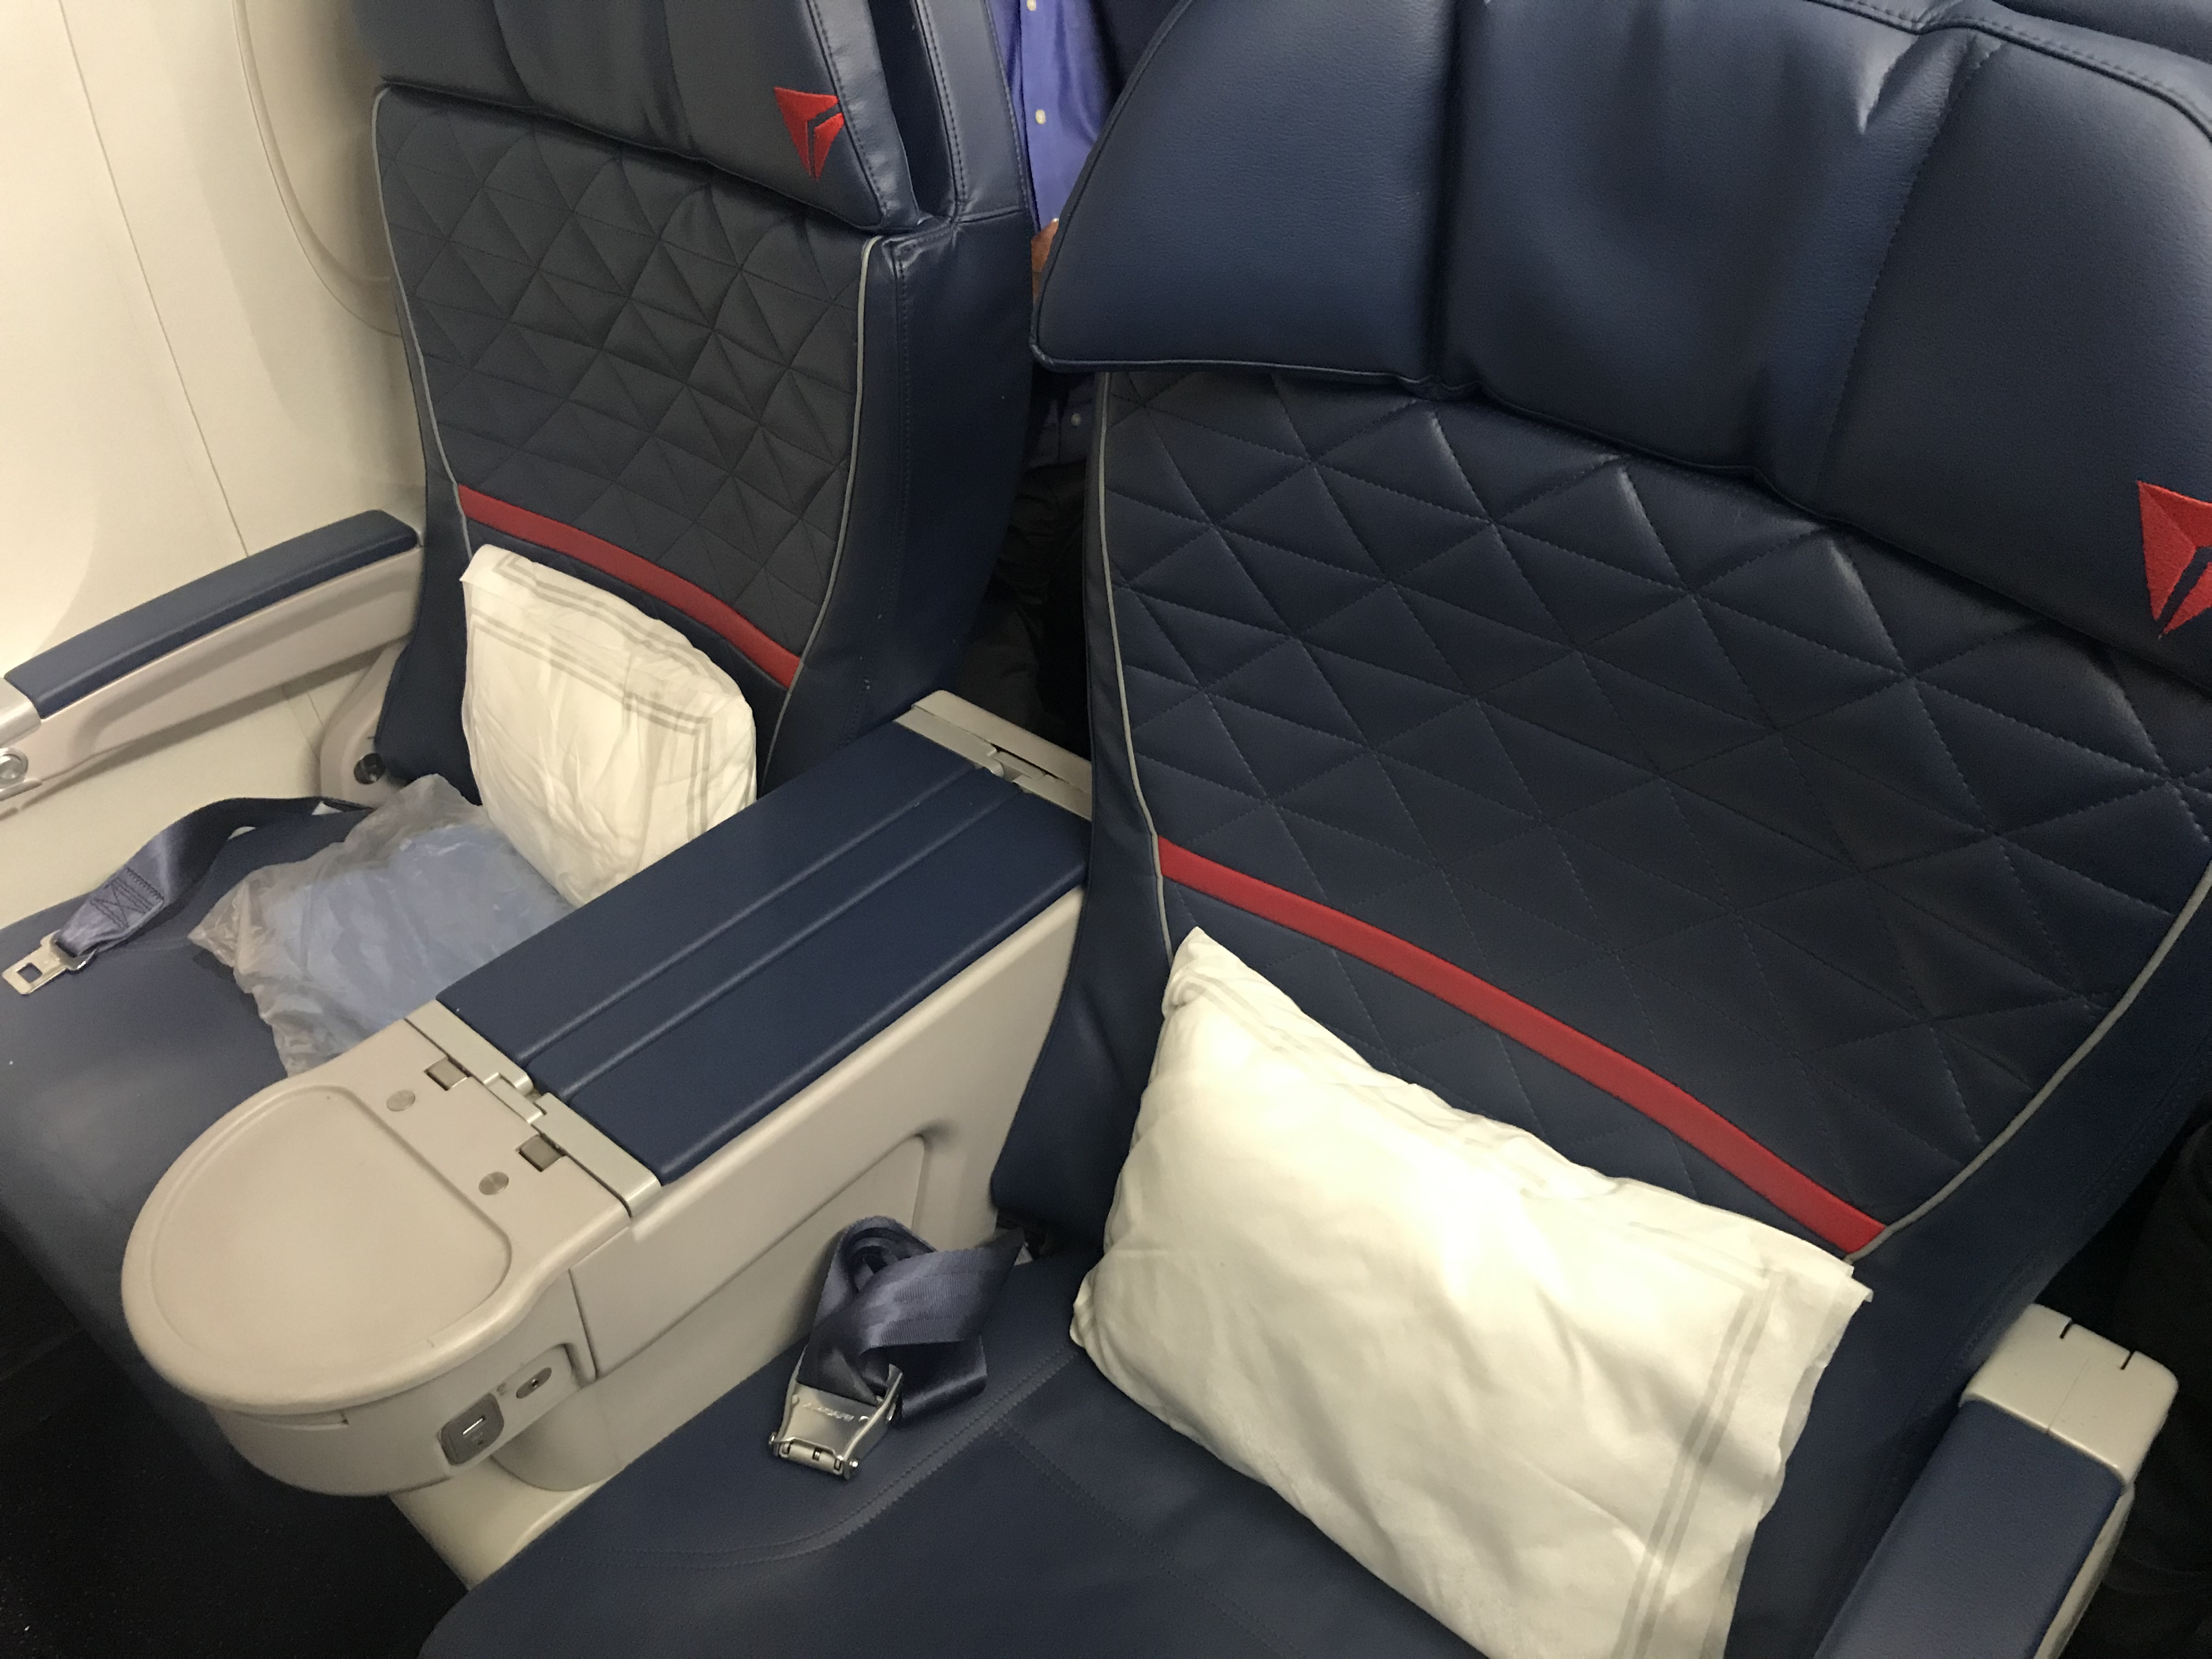 complimentary upgrades on award ticket - delta